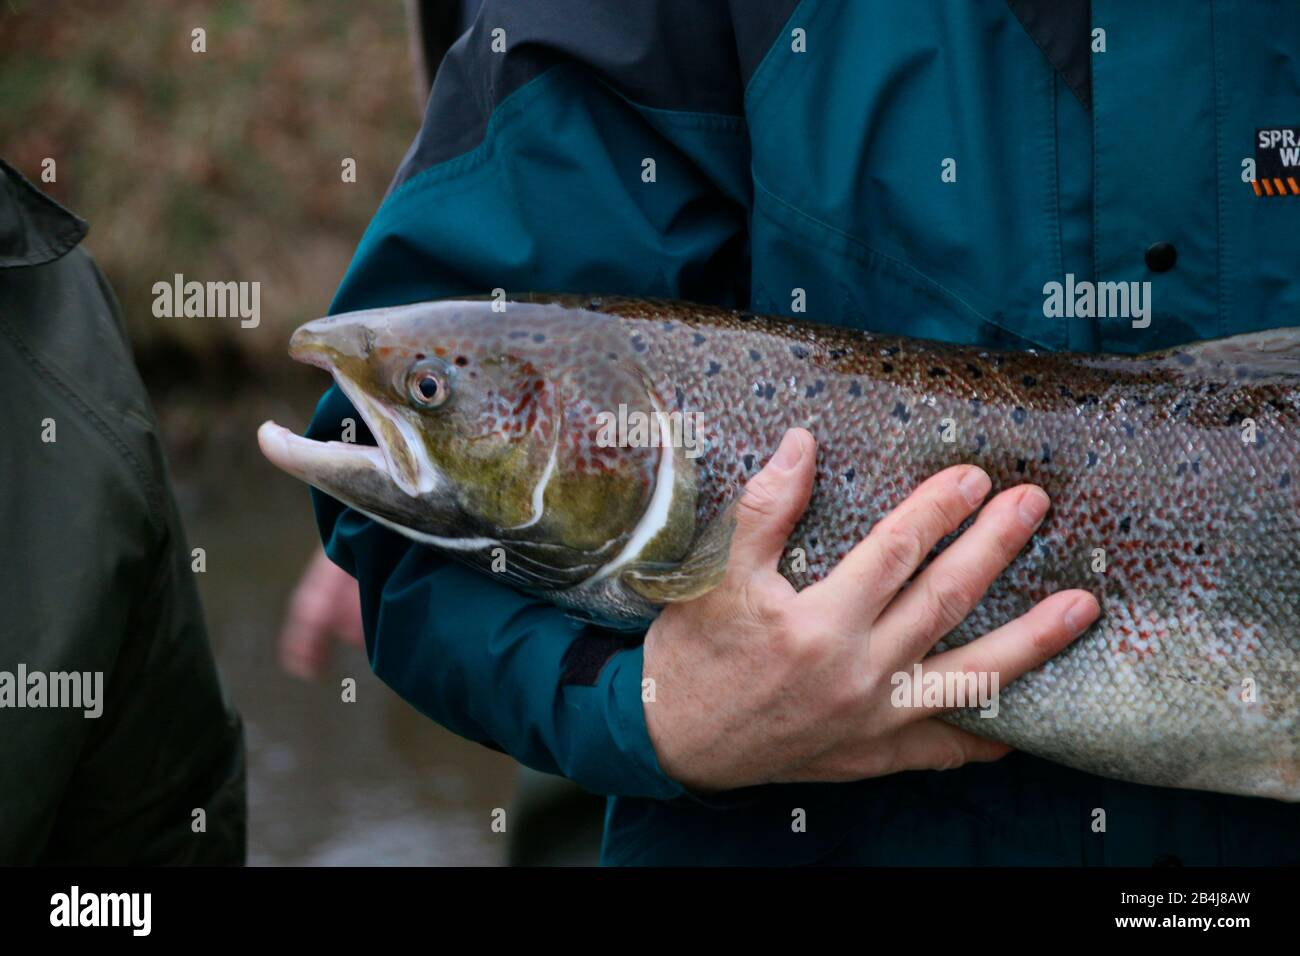 Germany, Saxony-Anhalt, Zerbst, man holds wild salmon in his arms, resettlement project, Institute for Inland Fisheries Potsdam eV (IfB) Stock Photo